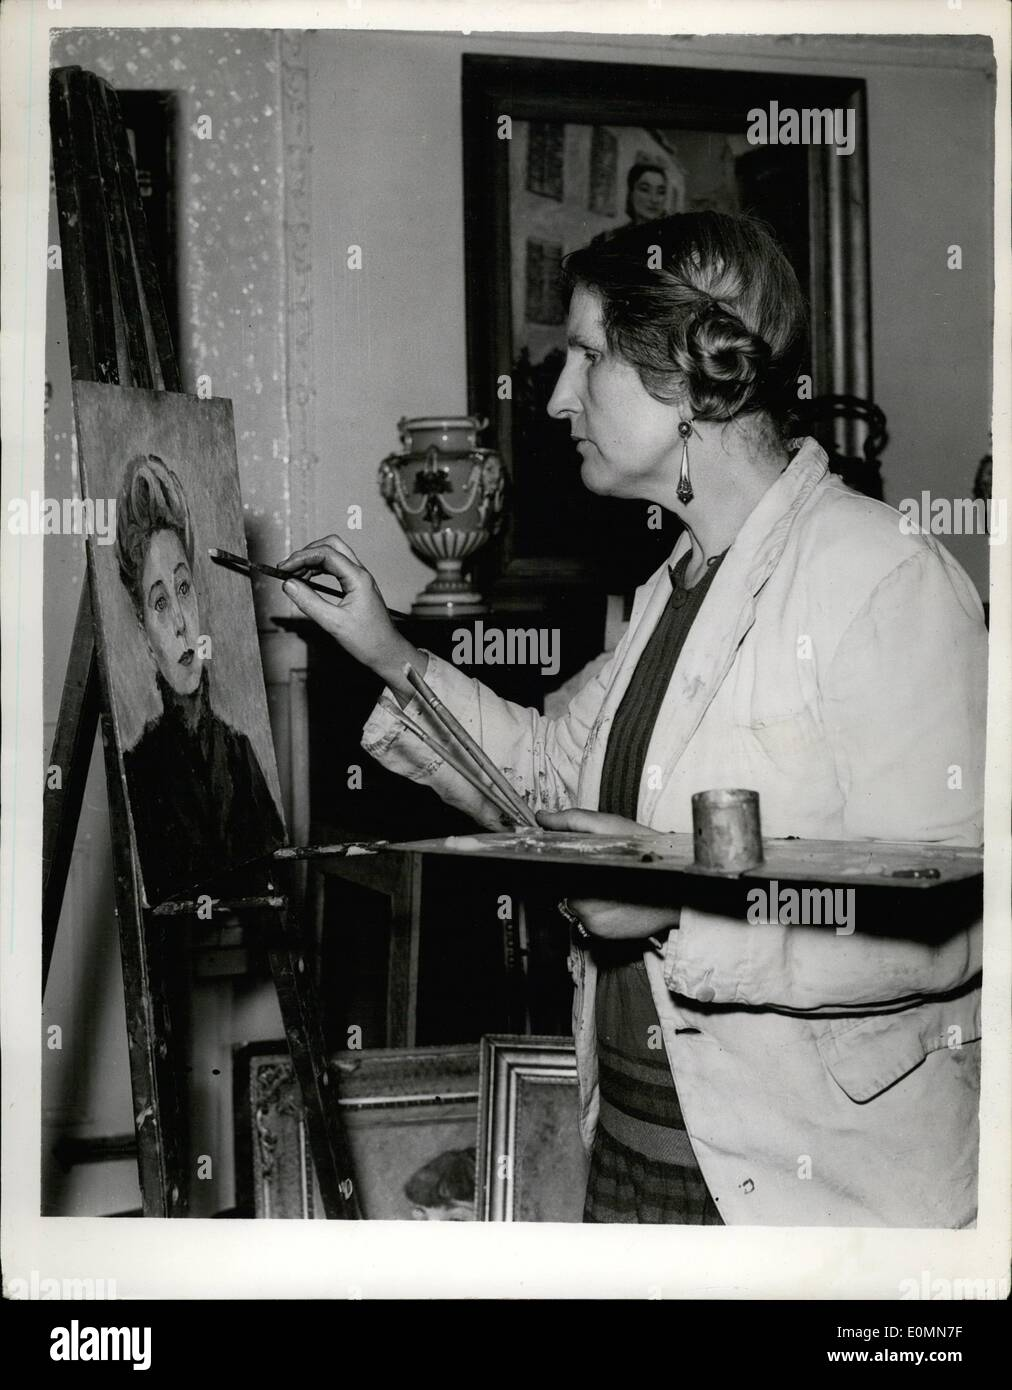 Mar. 03, 1956 - Murdered Woman Identified. Mrs. Marian Duignan: The body of a murdered woman - which was found in Stock Photo